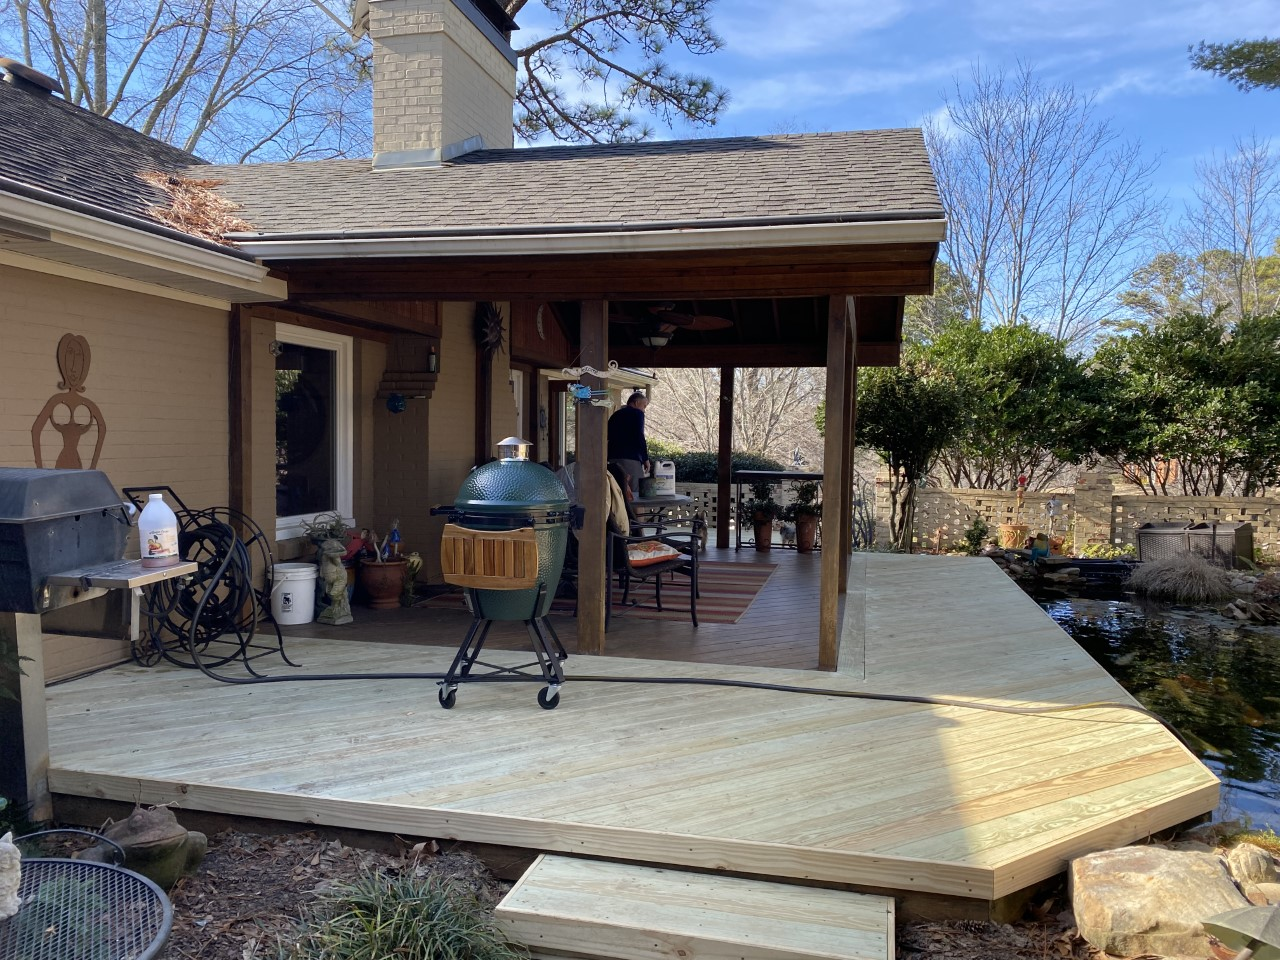 Outdoor-entertaining-is-easy-on-this-versatile-deck